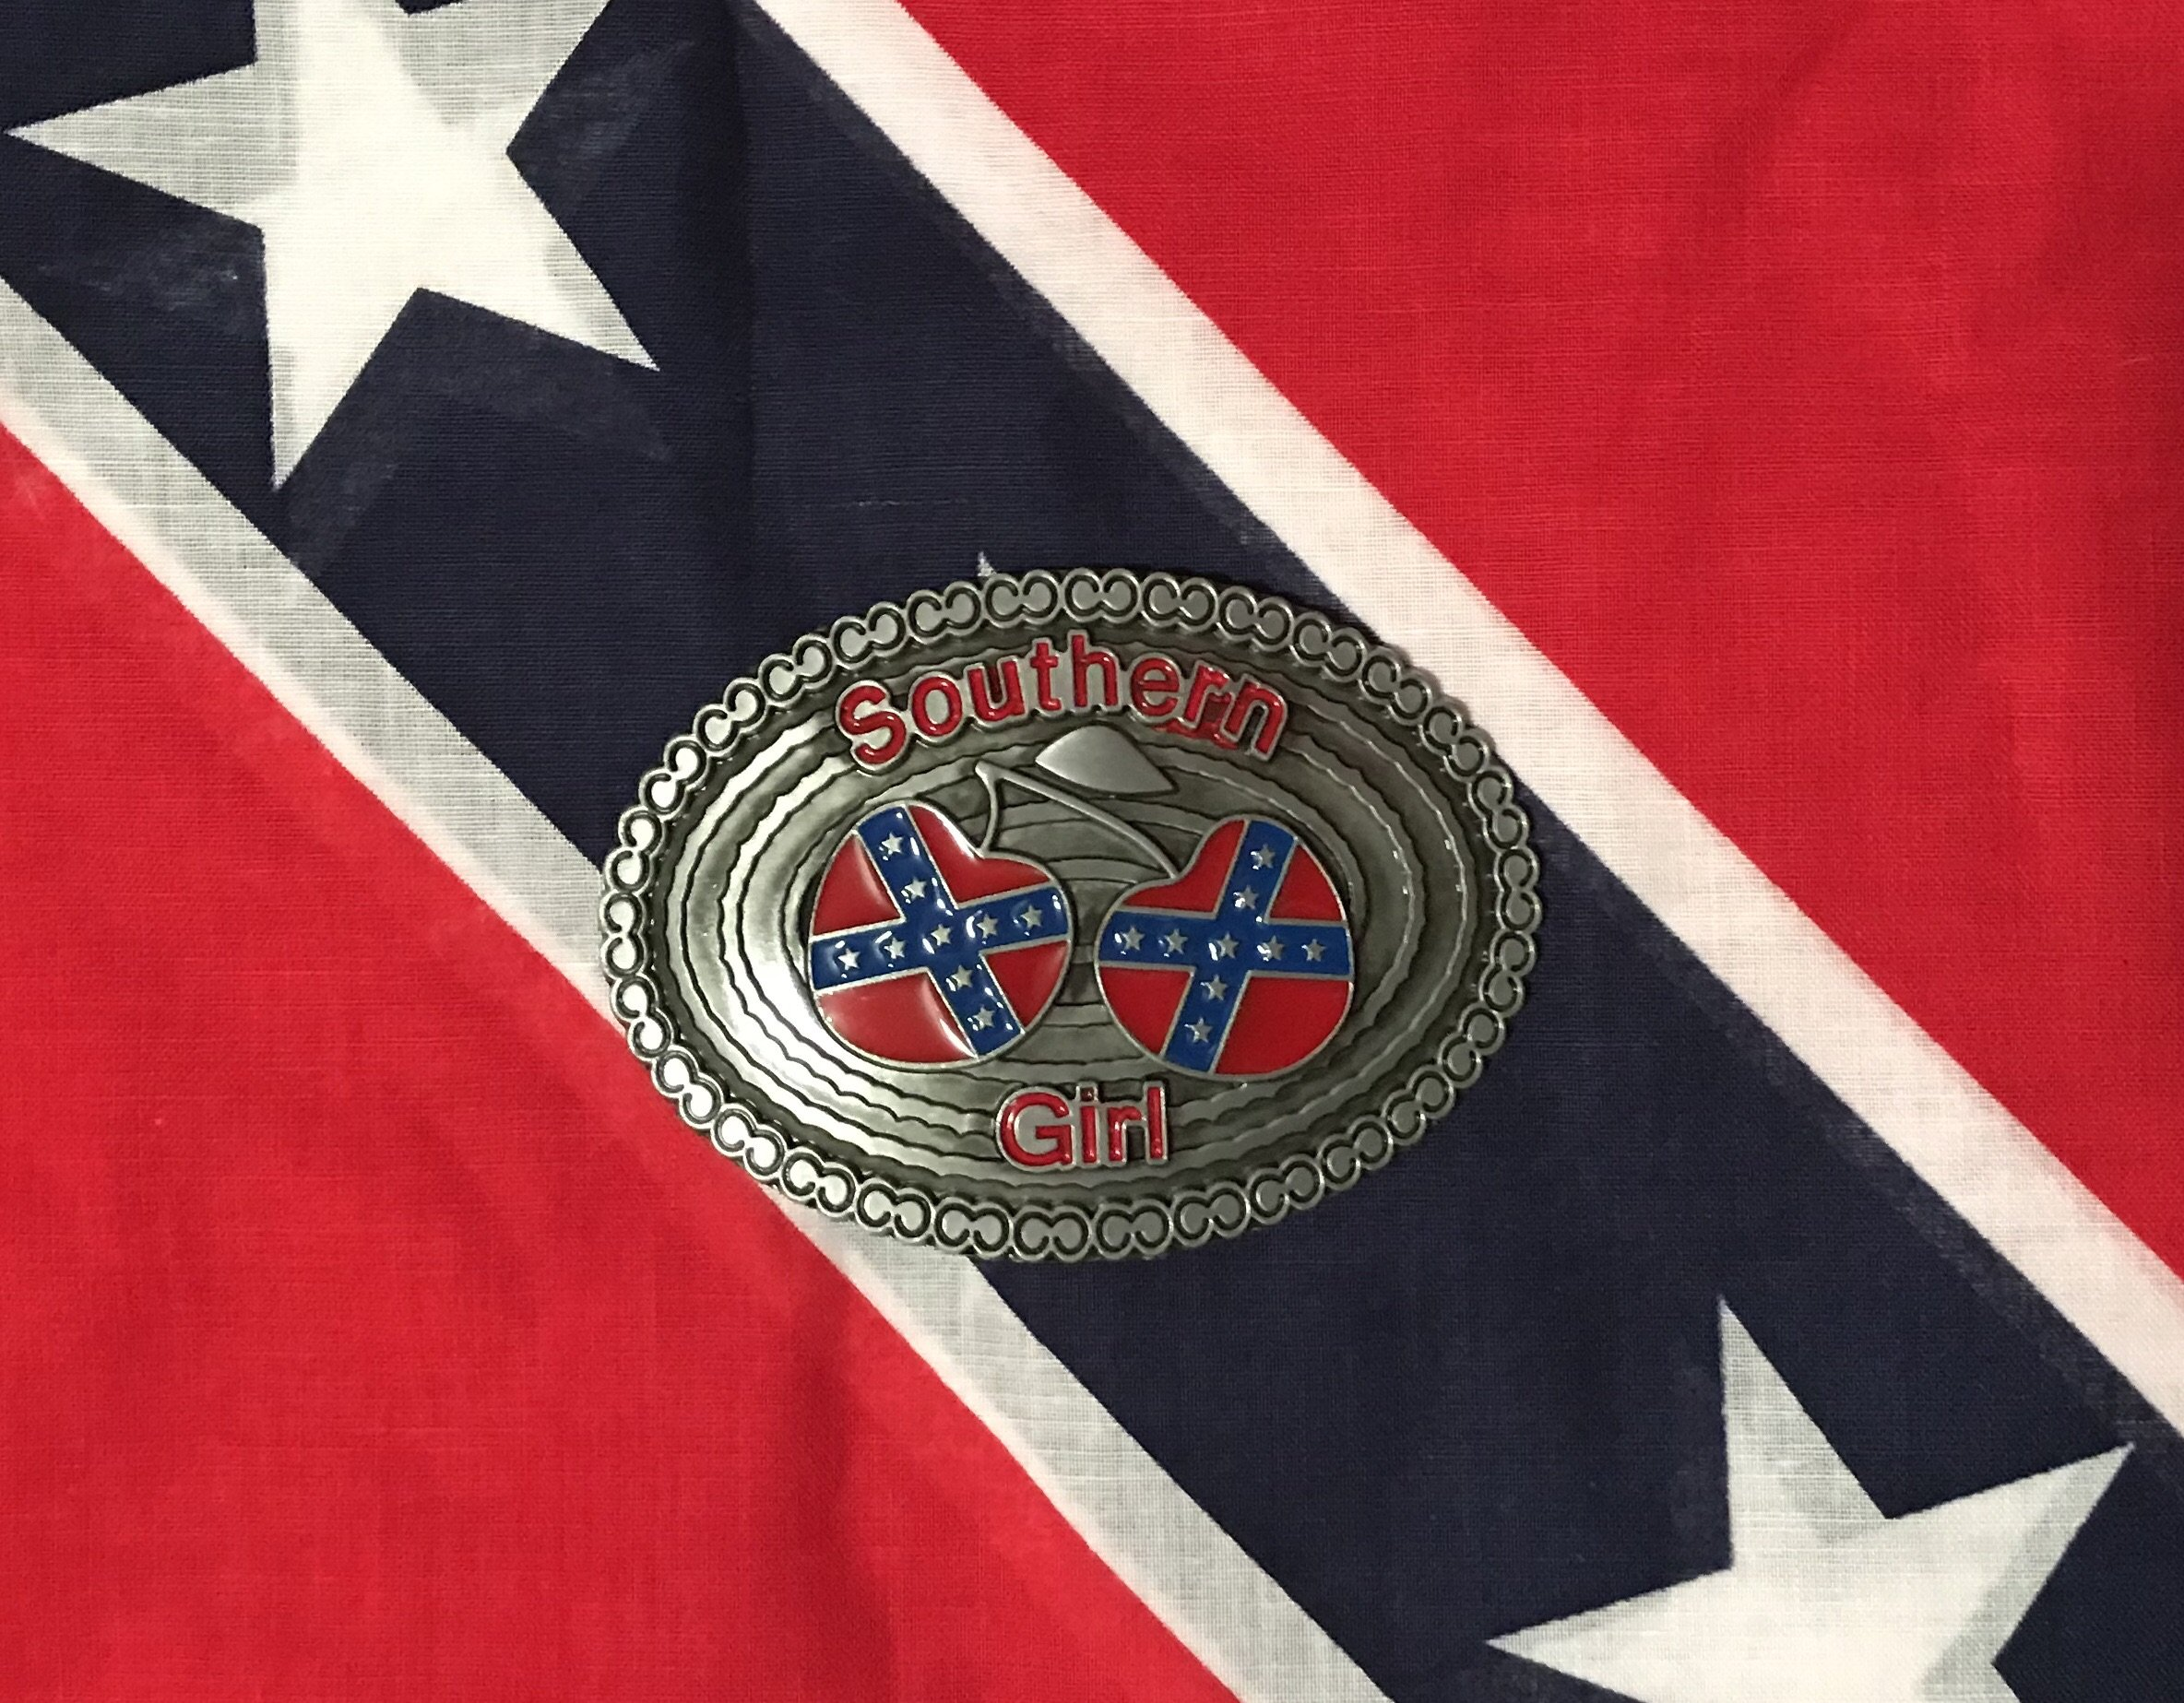 Rebel Southern Girl Belt Buckle